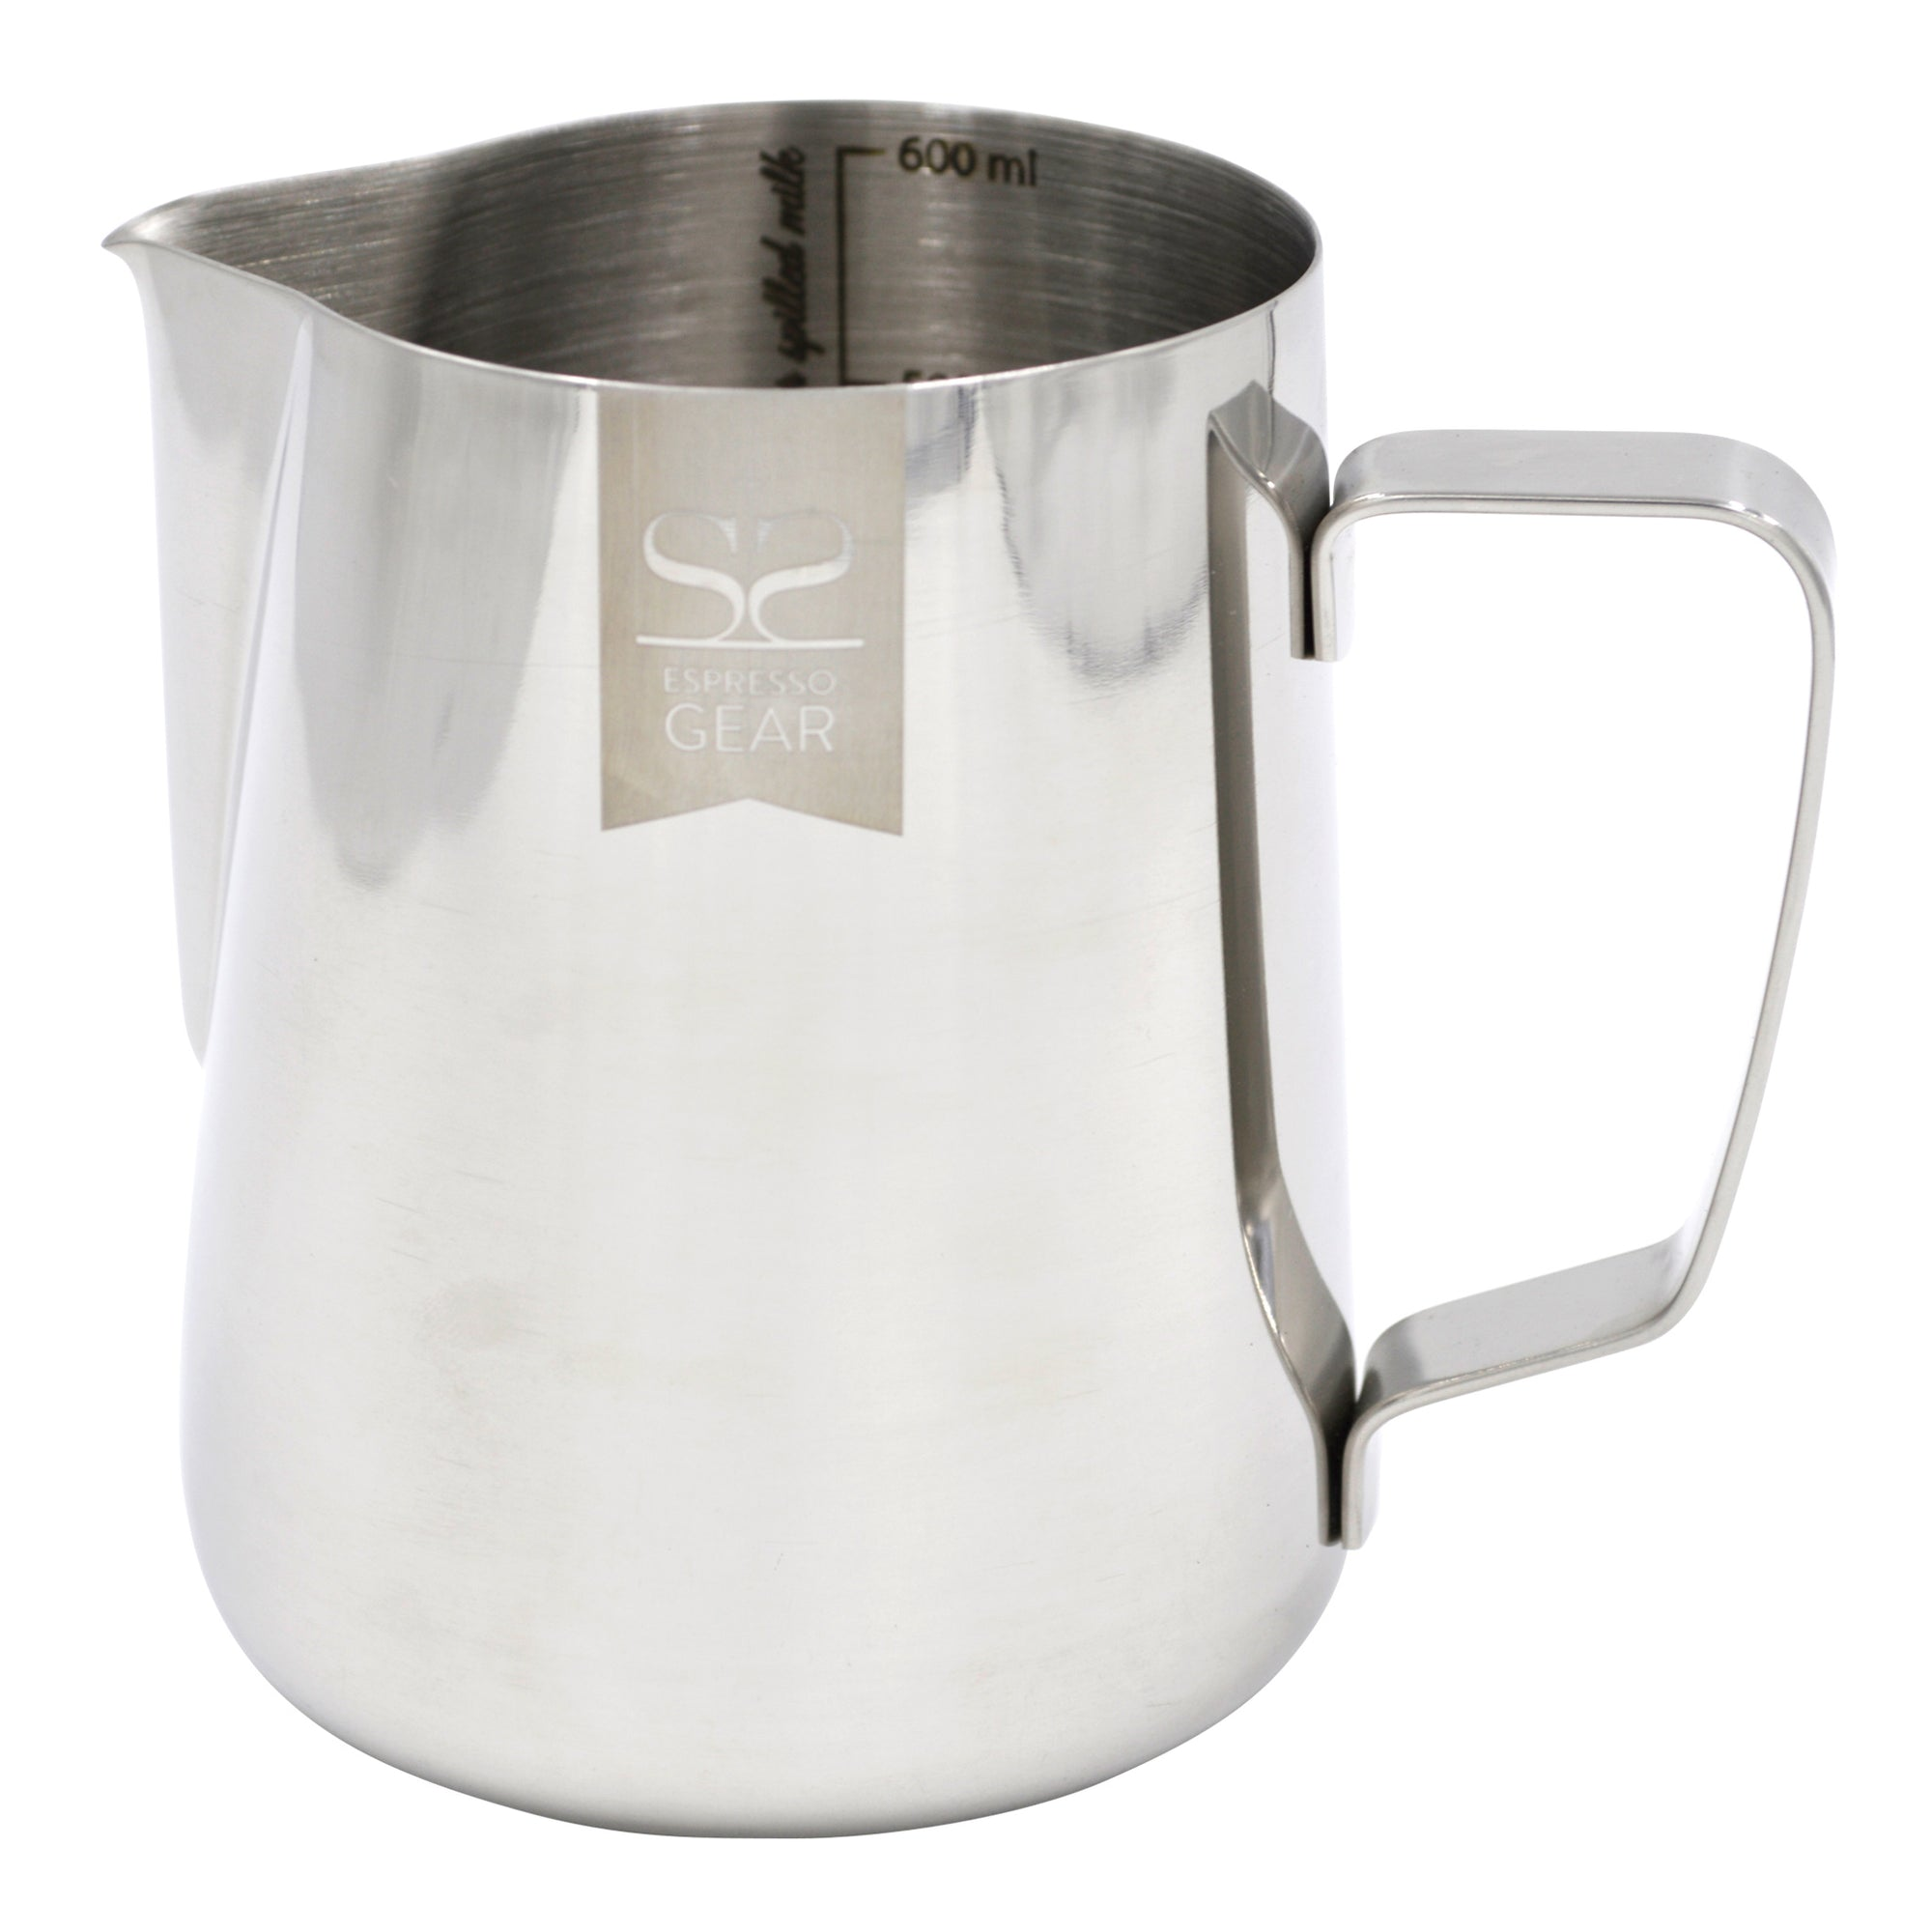 Espresso Gear Stainless Steel Pitcher 600ml - Espresso Gear